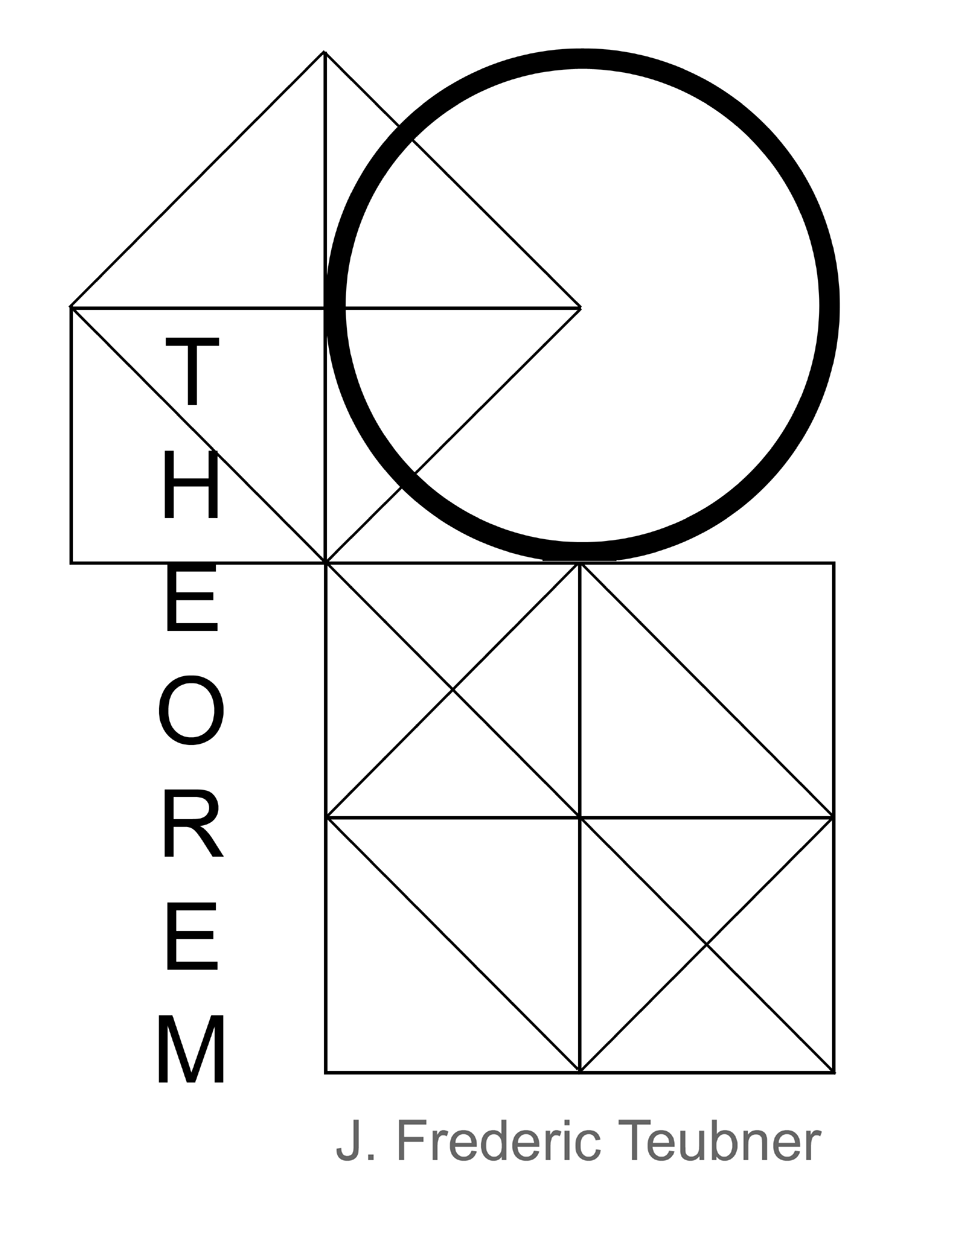 Theorem by J. Frederic Teubner